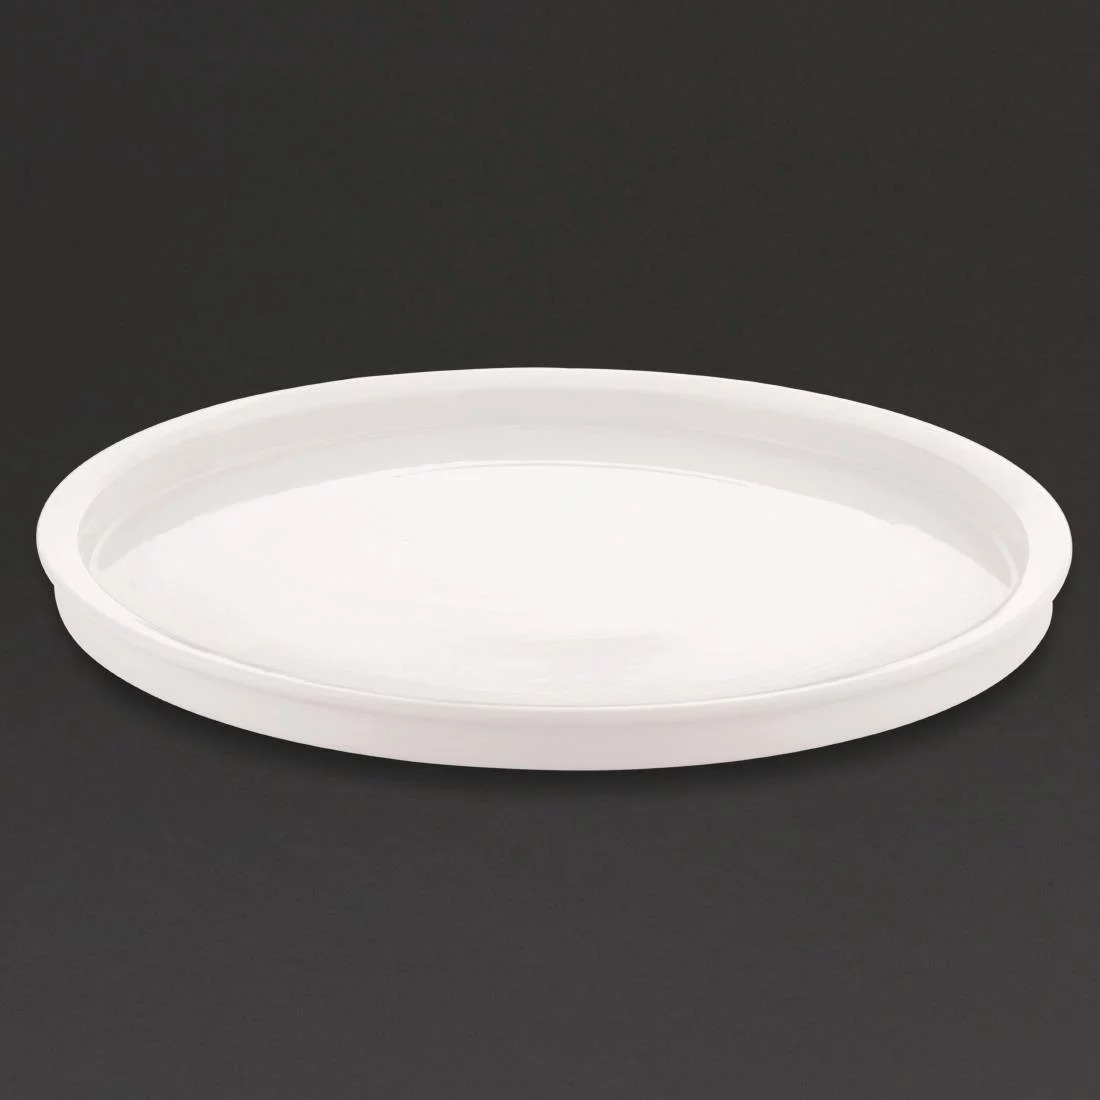 Cake Stand Plate only for Dome CL492 - 285mm 11 1/5""